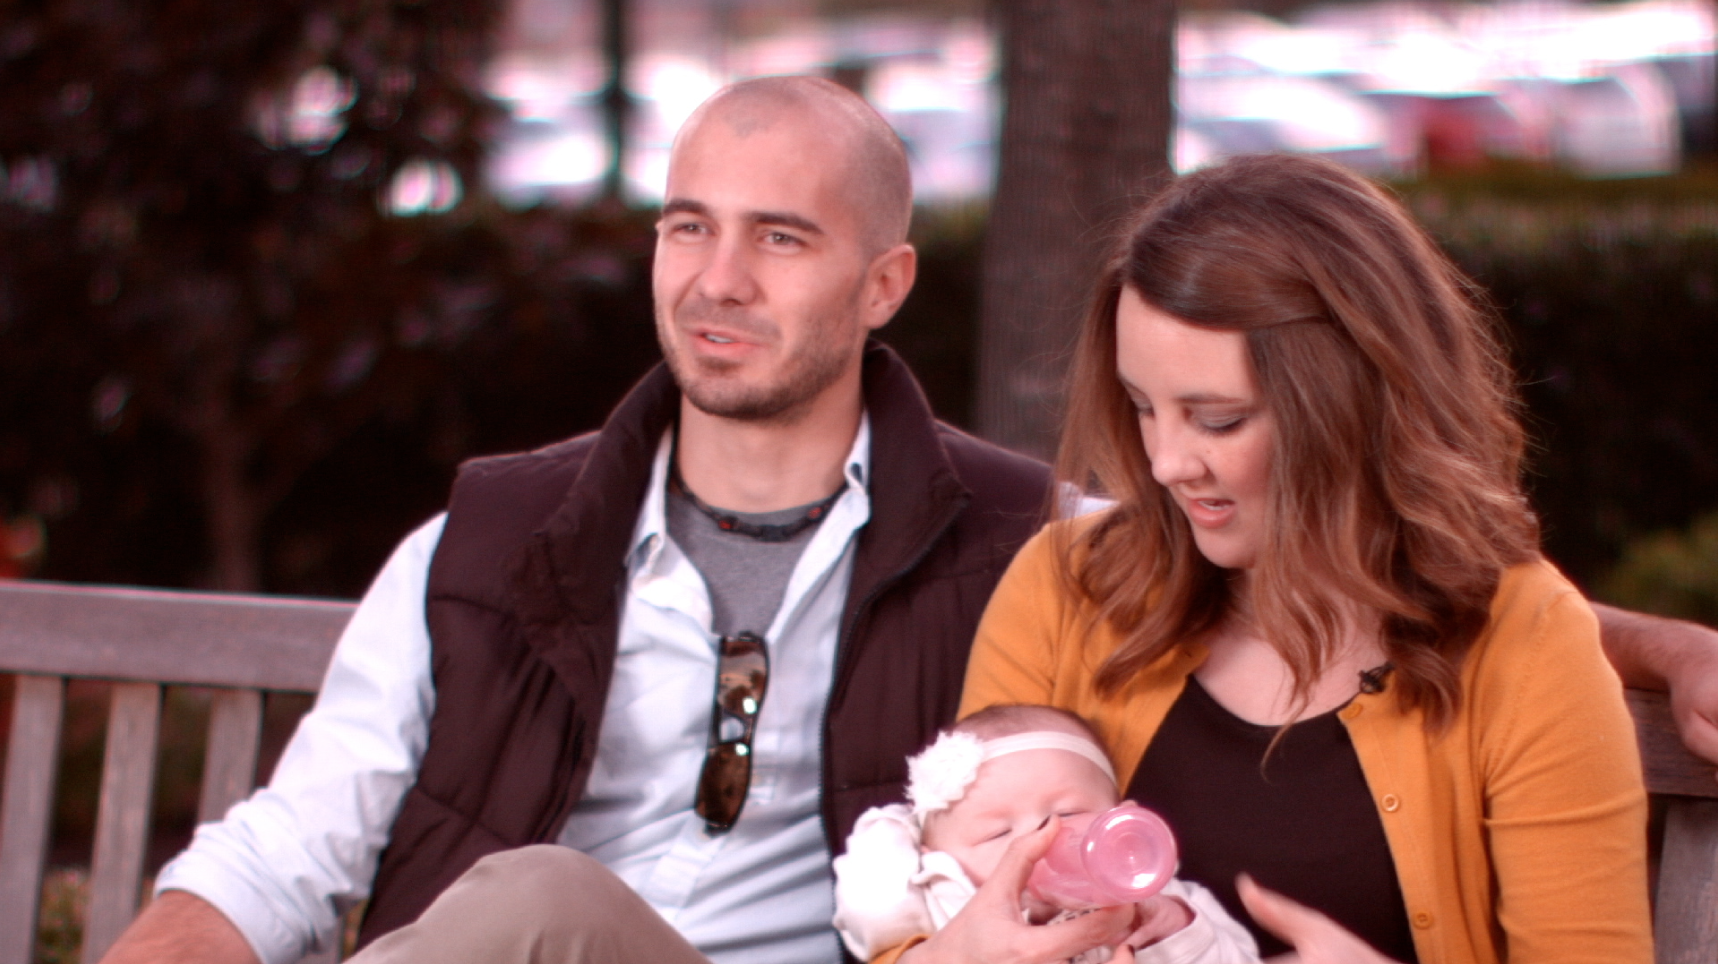 A Couple looking at their baby in a screenshot of the Baptist Health Corporation Video produced by Light Productions